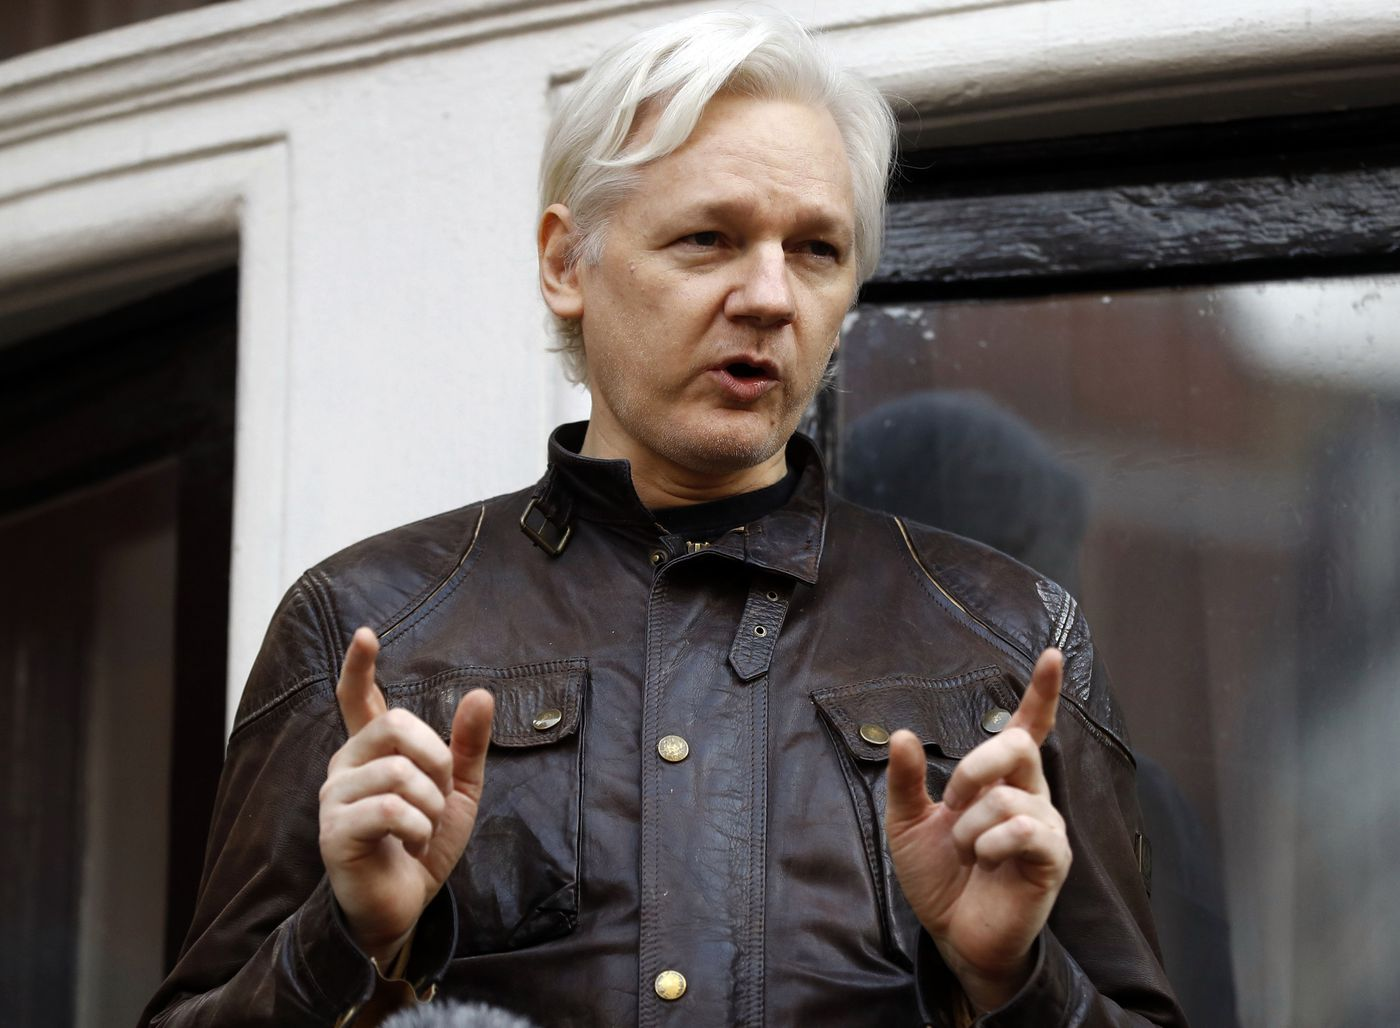 In this May 19, 2017, file photo, WikiLeaks founder Julian Assange gestures to supporters outside the Ecuadorian Embassy in London, where he has been in self imposed exile since 2012. He was arrested at the embassy Thursday.